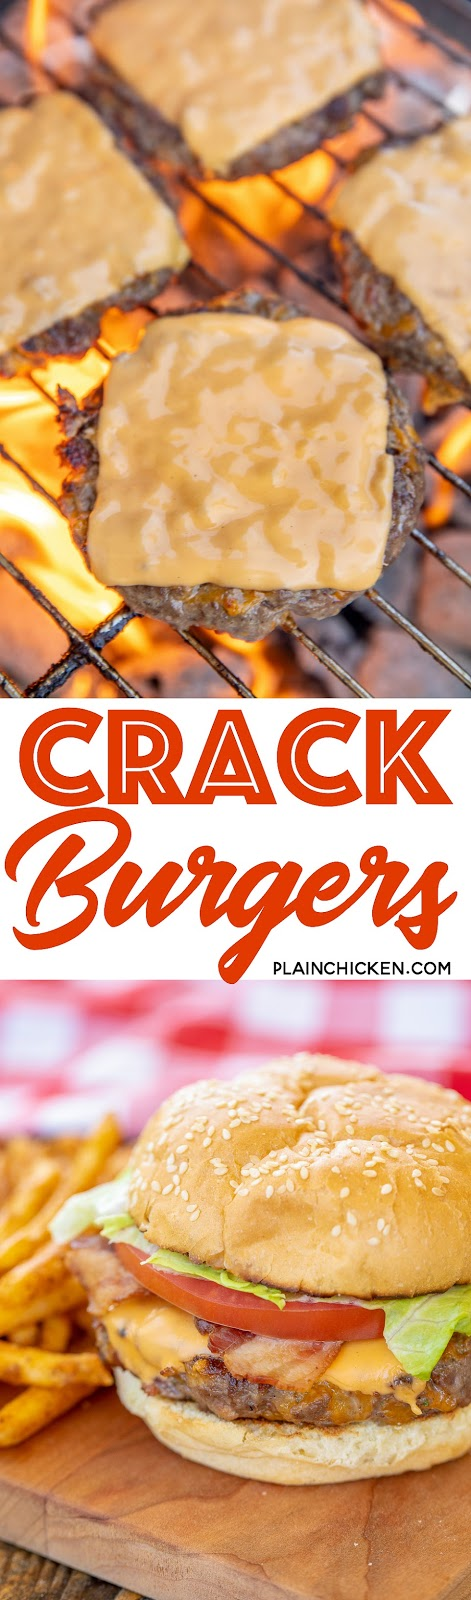 Crack Burger - burgers loaded with cheddar, bacon and ranch! Our all-time favorite burger! We always make extra and freeze the patties for later. #grilling #burgers #beefrecipes